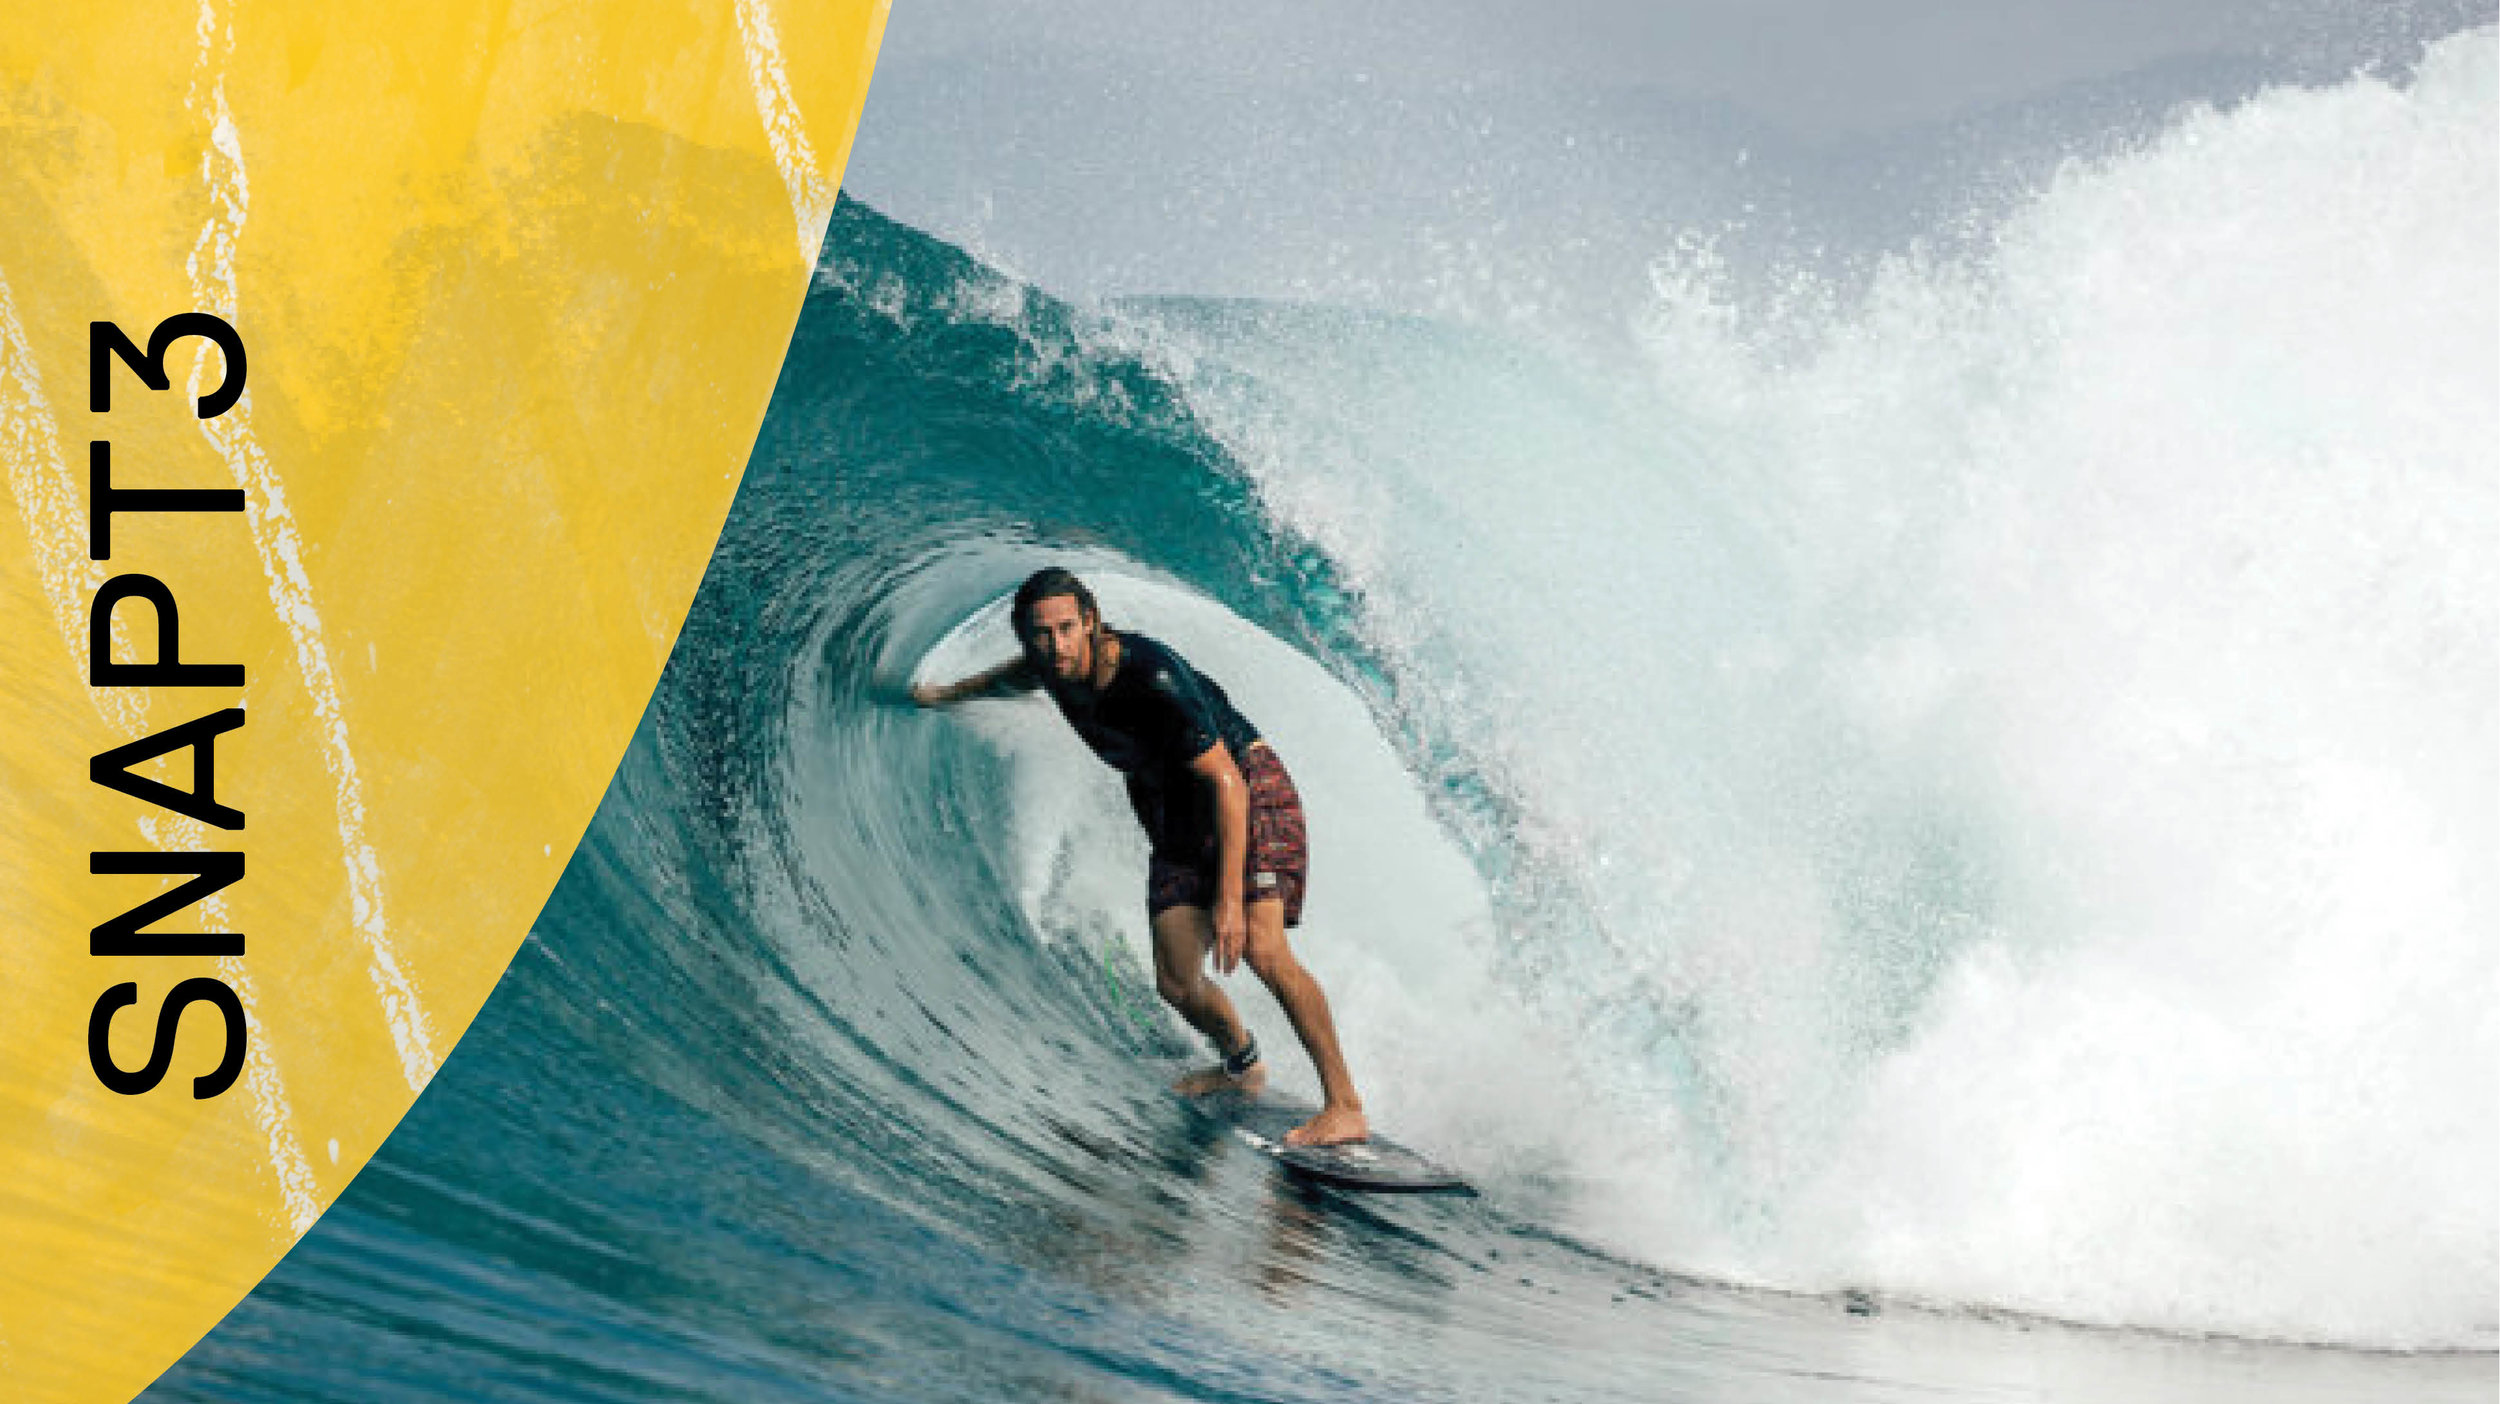 SNAPT3 - Reviving the 90's surf movie vibe